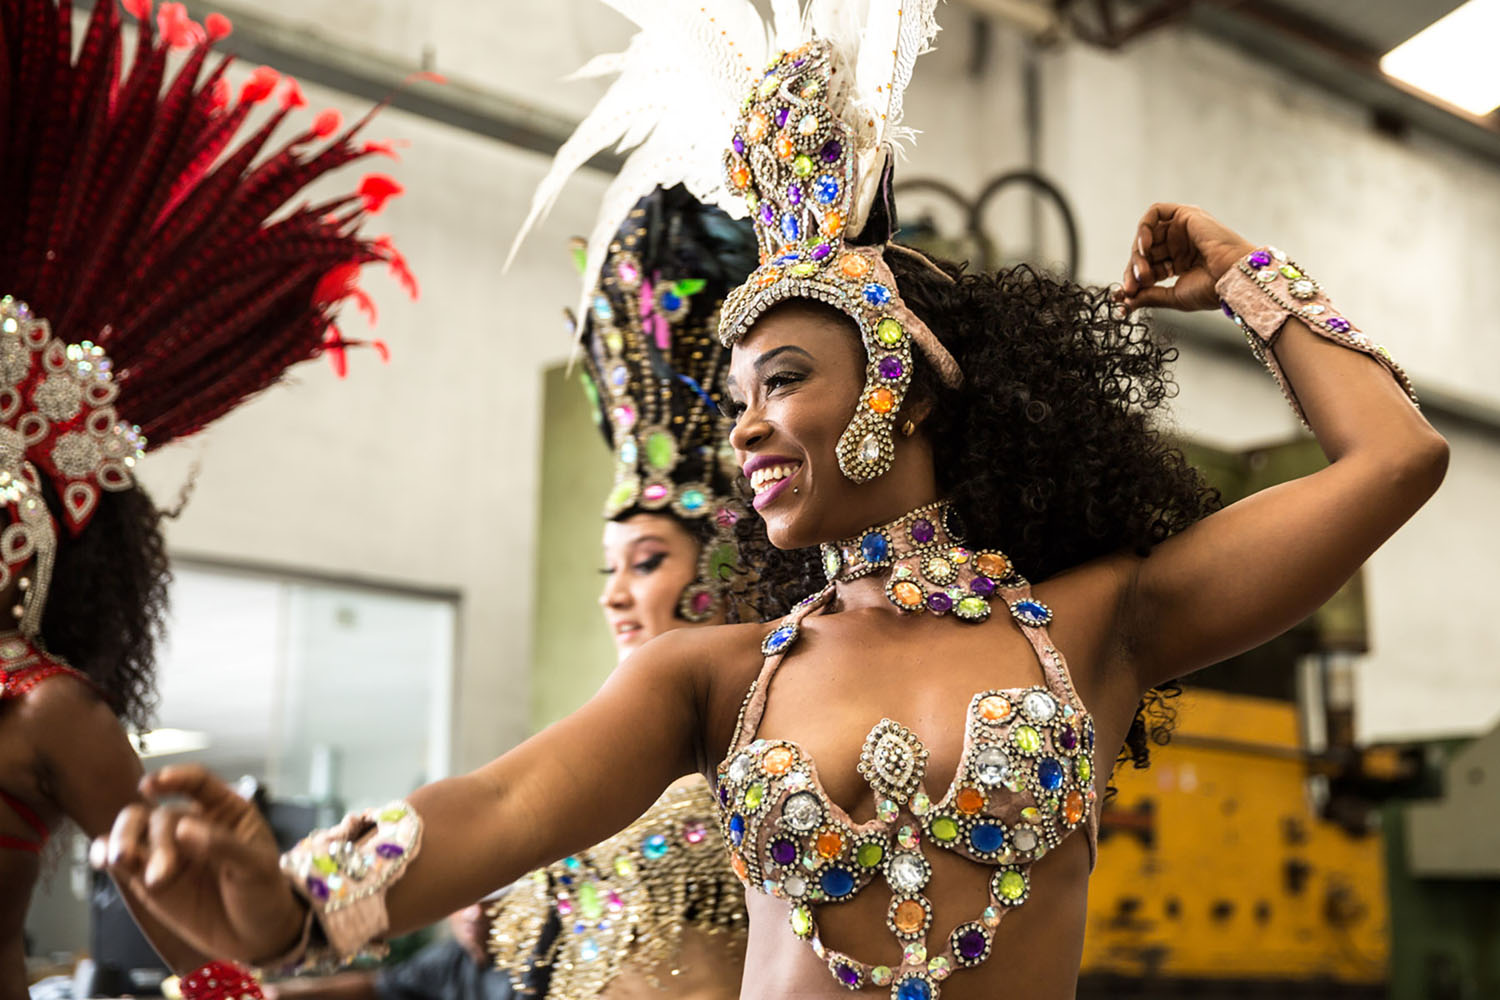 Samba performers in Rio.